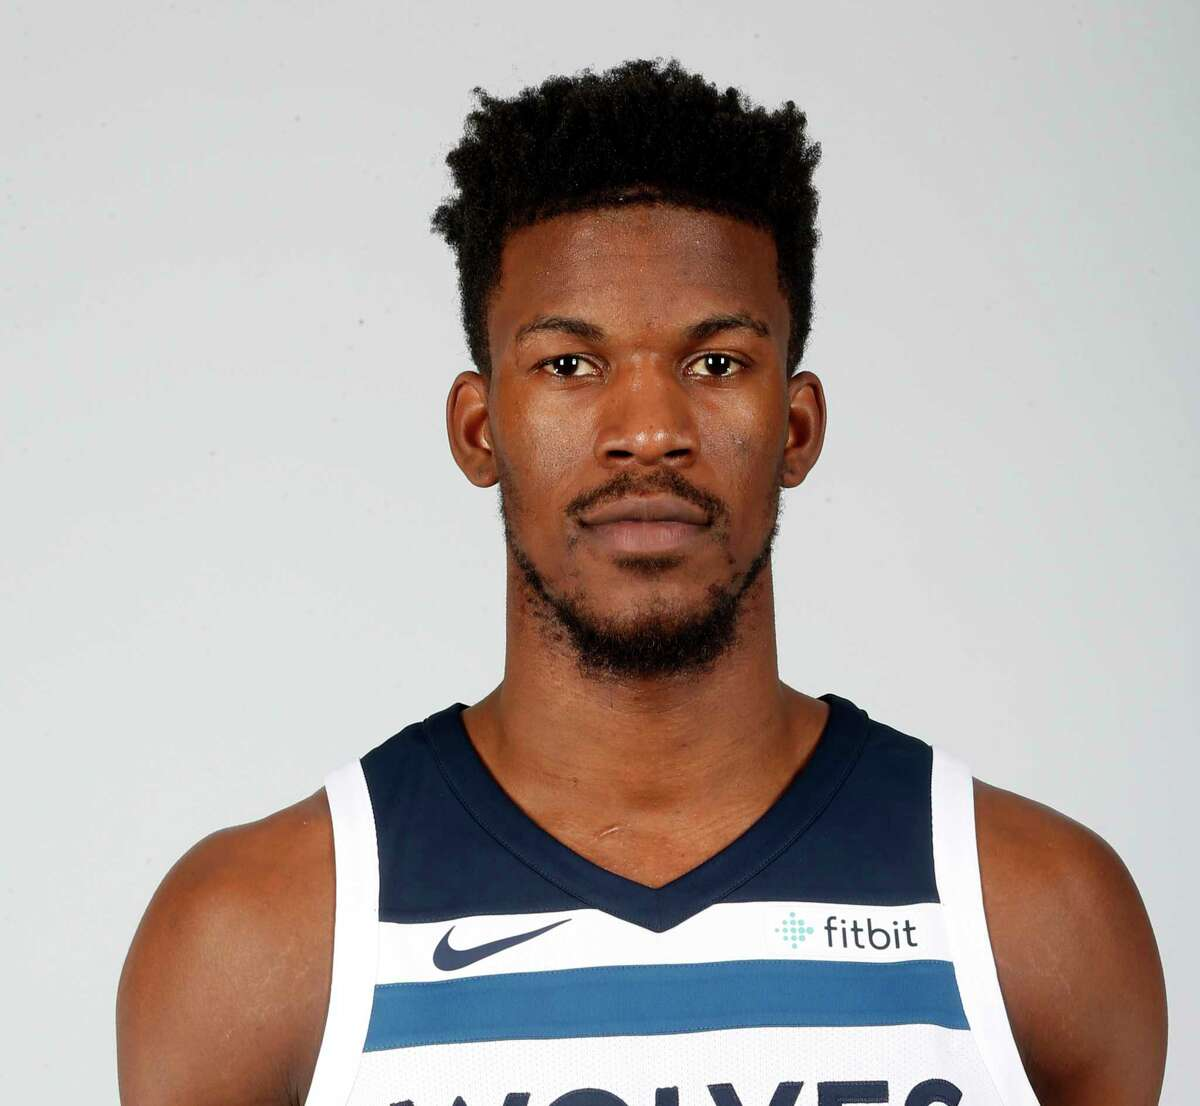 File-This Sept. 22, 2017, file photo shows Minnesota Timberwolves' Jimmy Butler posing during the NBA basketball team media day in Minneapolis. Butler is headed to Philadelphia, ending the weeks-long saga of him wanting out of Minnesota. A person with knowledge of the situation says Butler is being traded to the 76ers in a package that will send Dario Saric and Robert Covington to the Timberwolves. (AP Photo/Jim Mone, File)